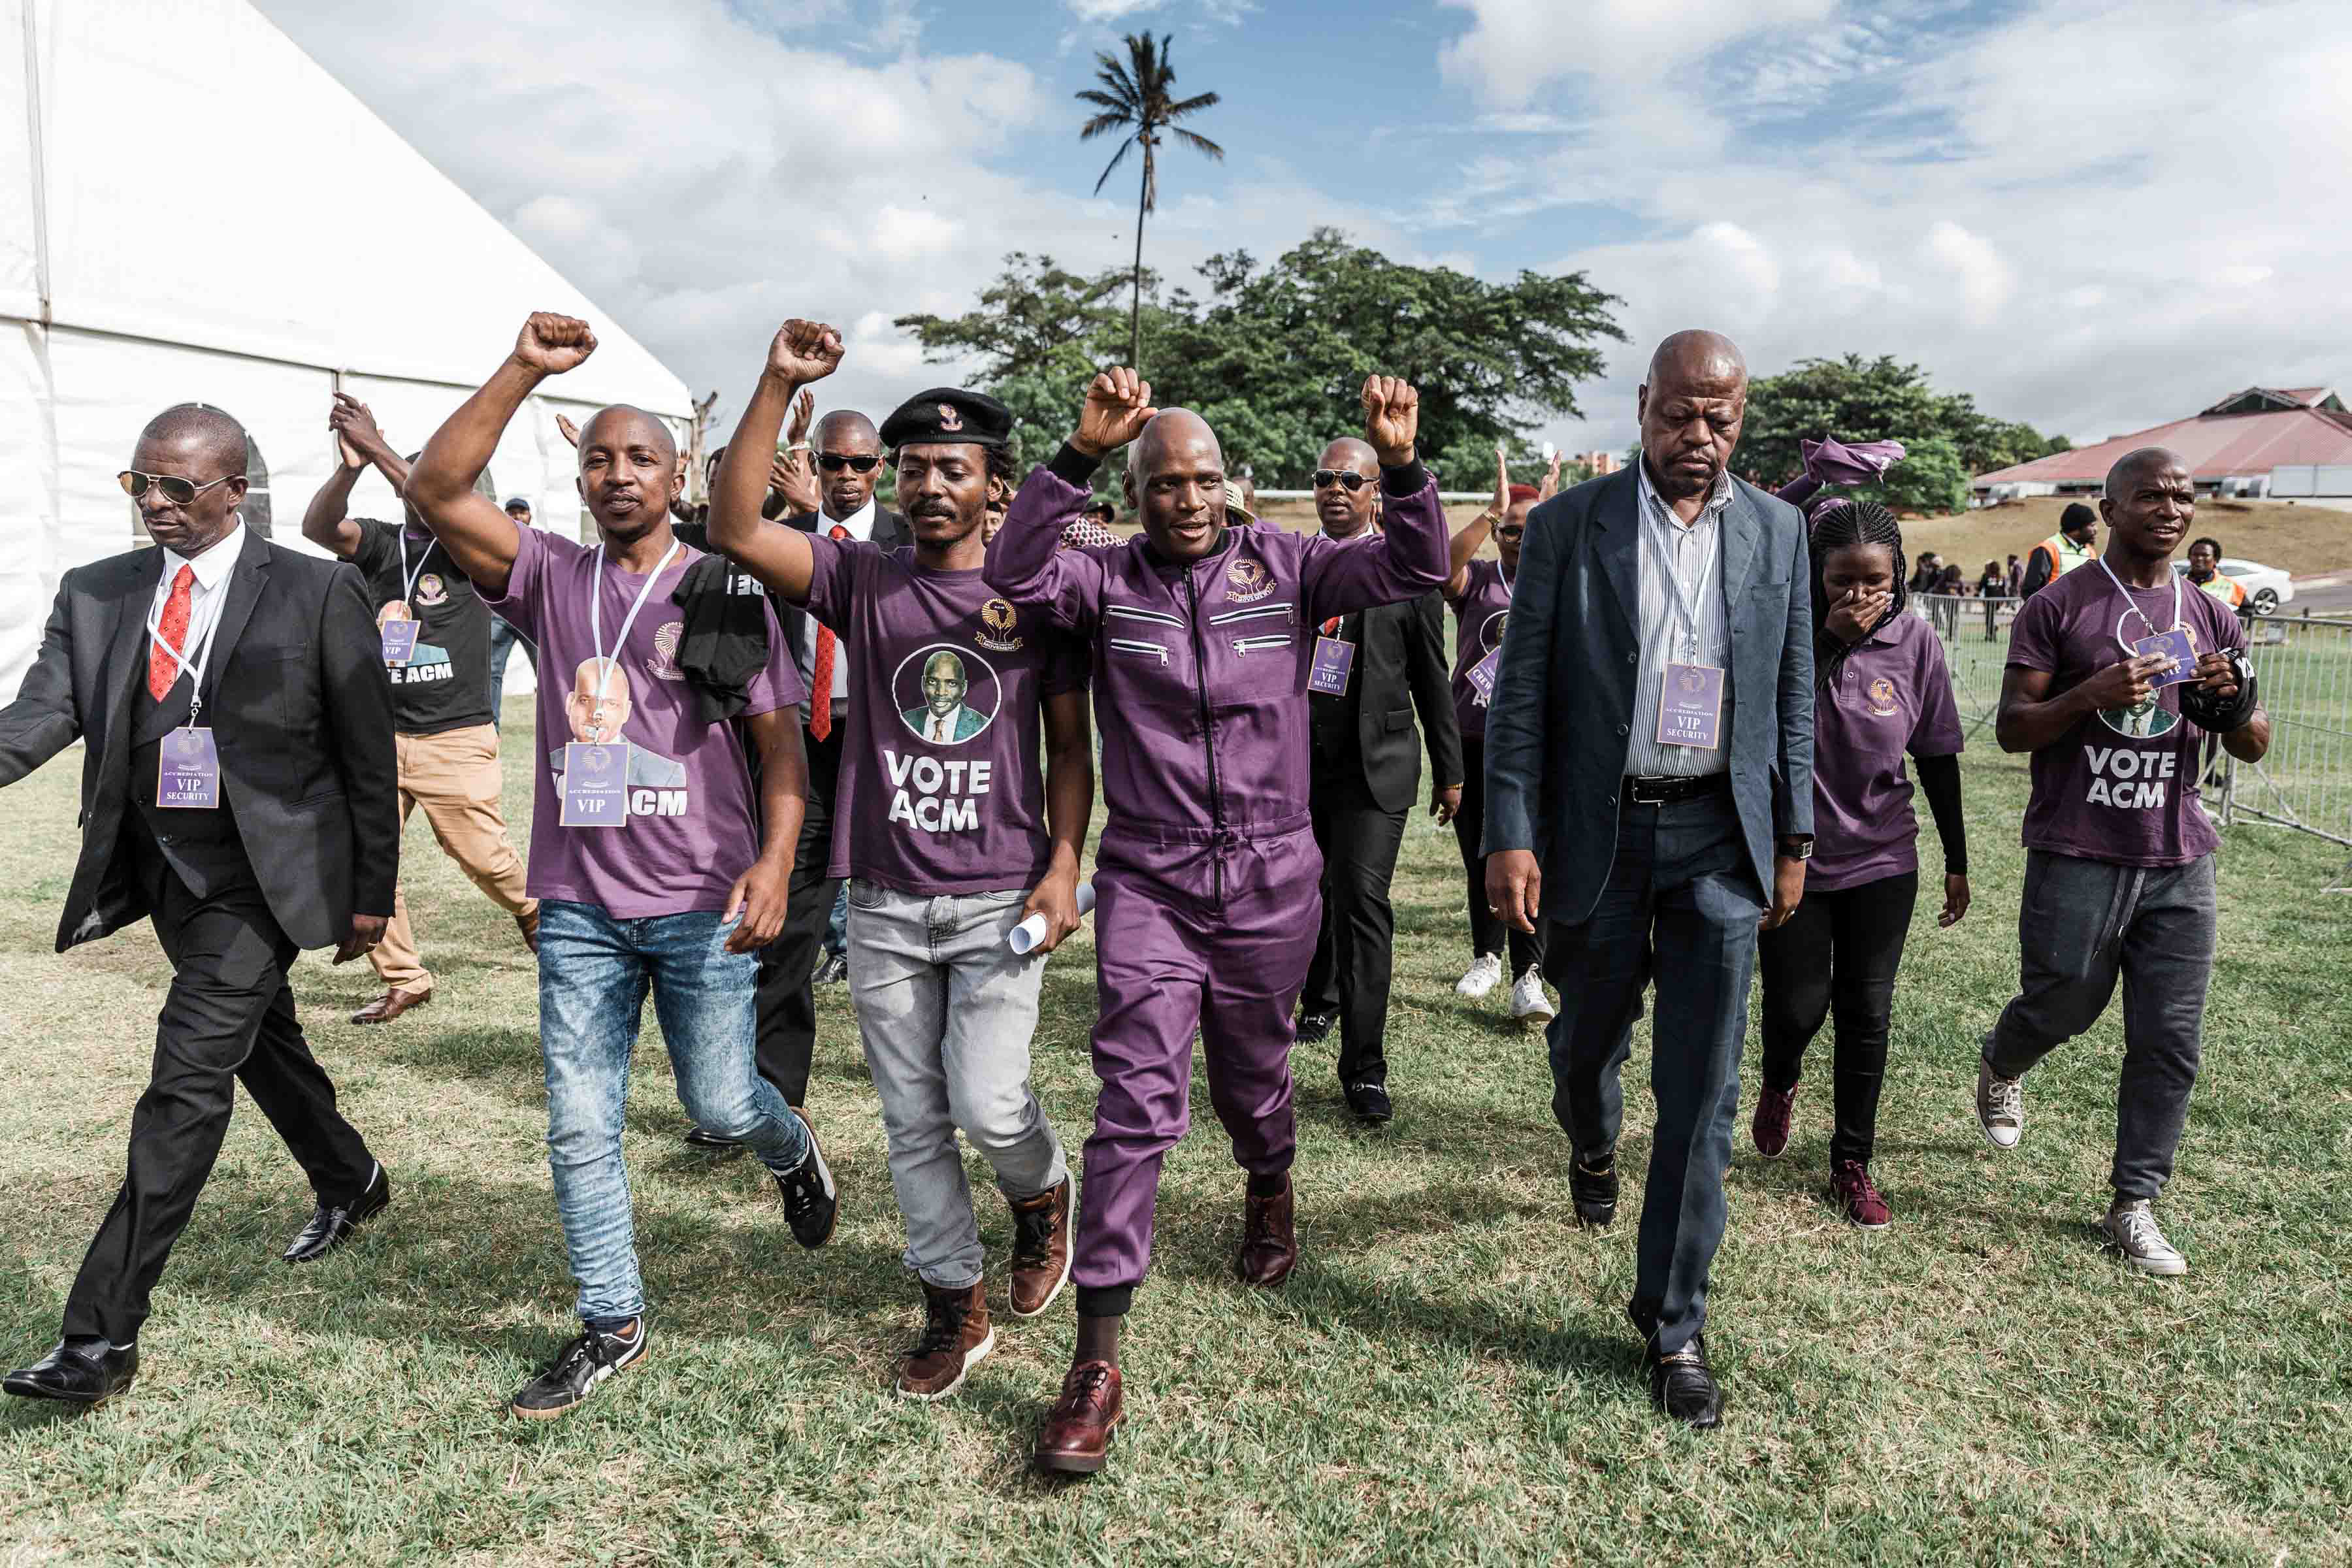 6 April 2019: African Content Movement president Hlaudi Motsoeneng arrived late at his party's election manifesto launch in Durban after his lawyers tried and failed to get the SABC to broadcast the event.